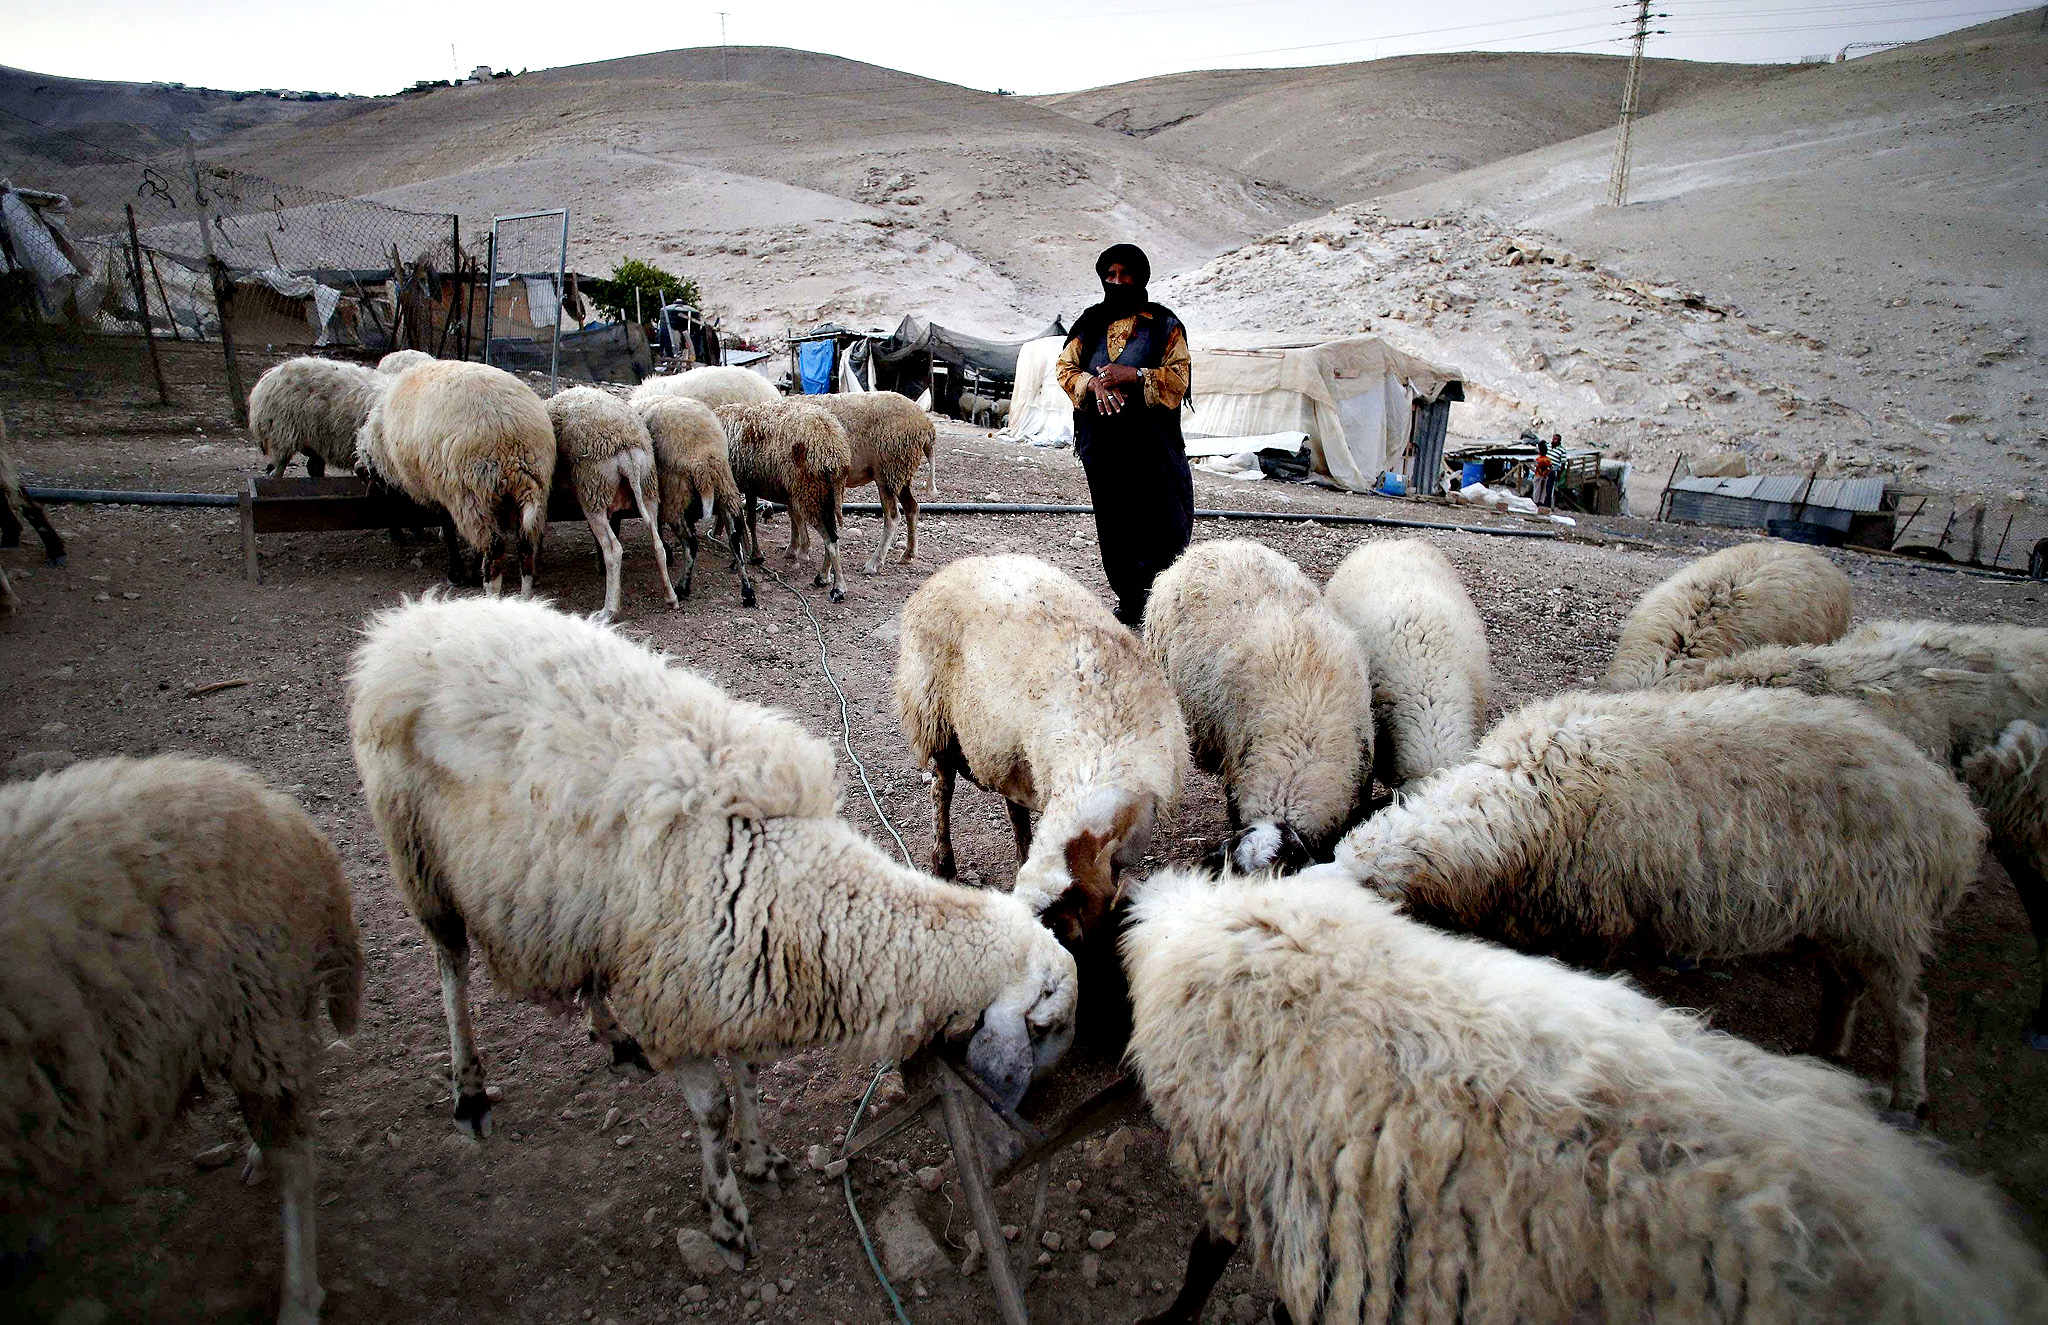 A Palestinian Bedouin woman stands next to her sheep in the West Bank village of Al-Eizariya, near east of Jerusalem.